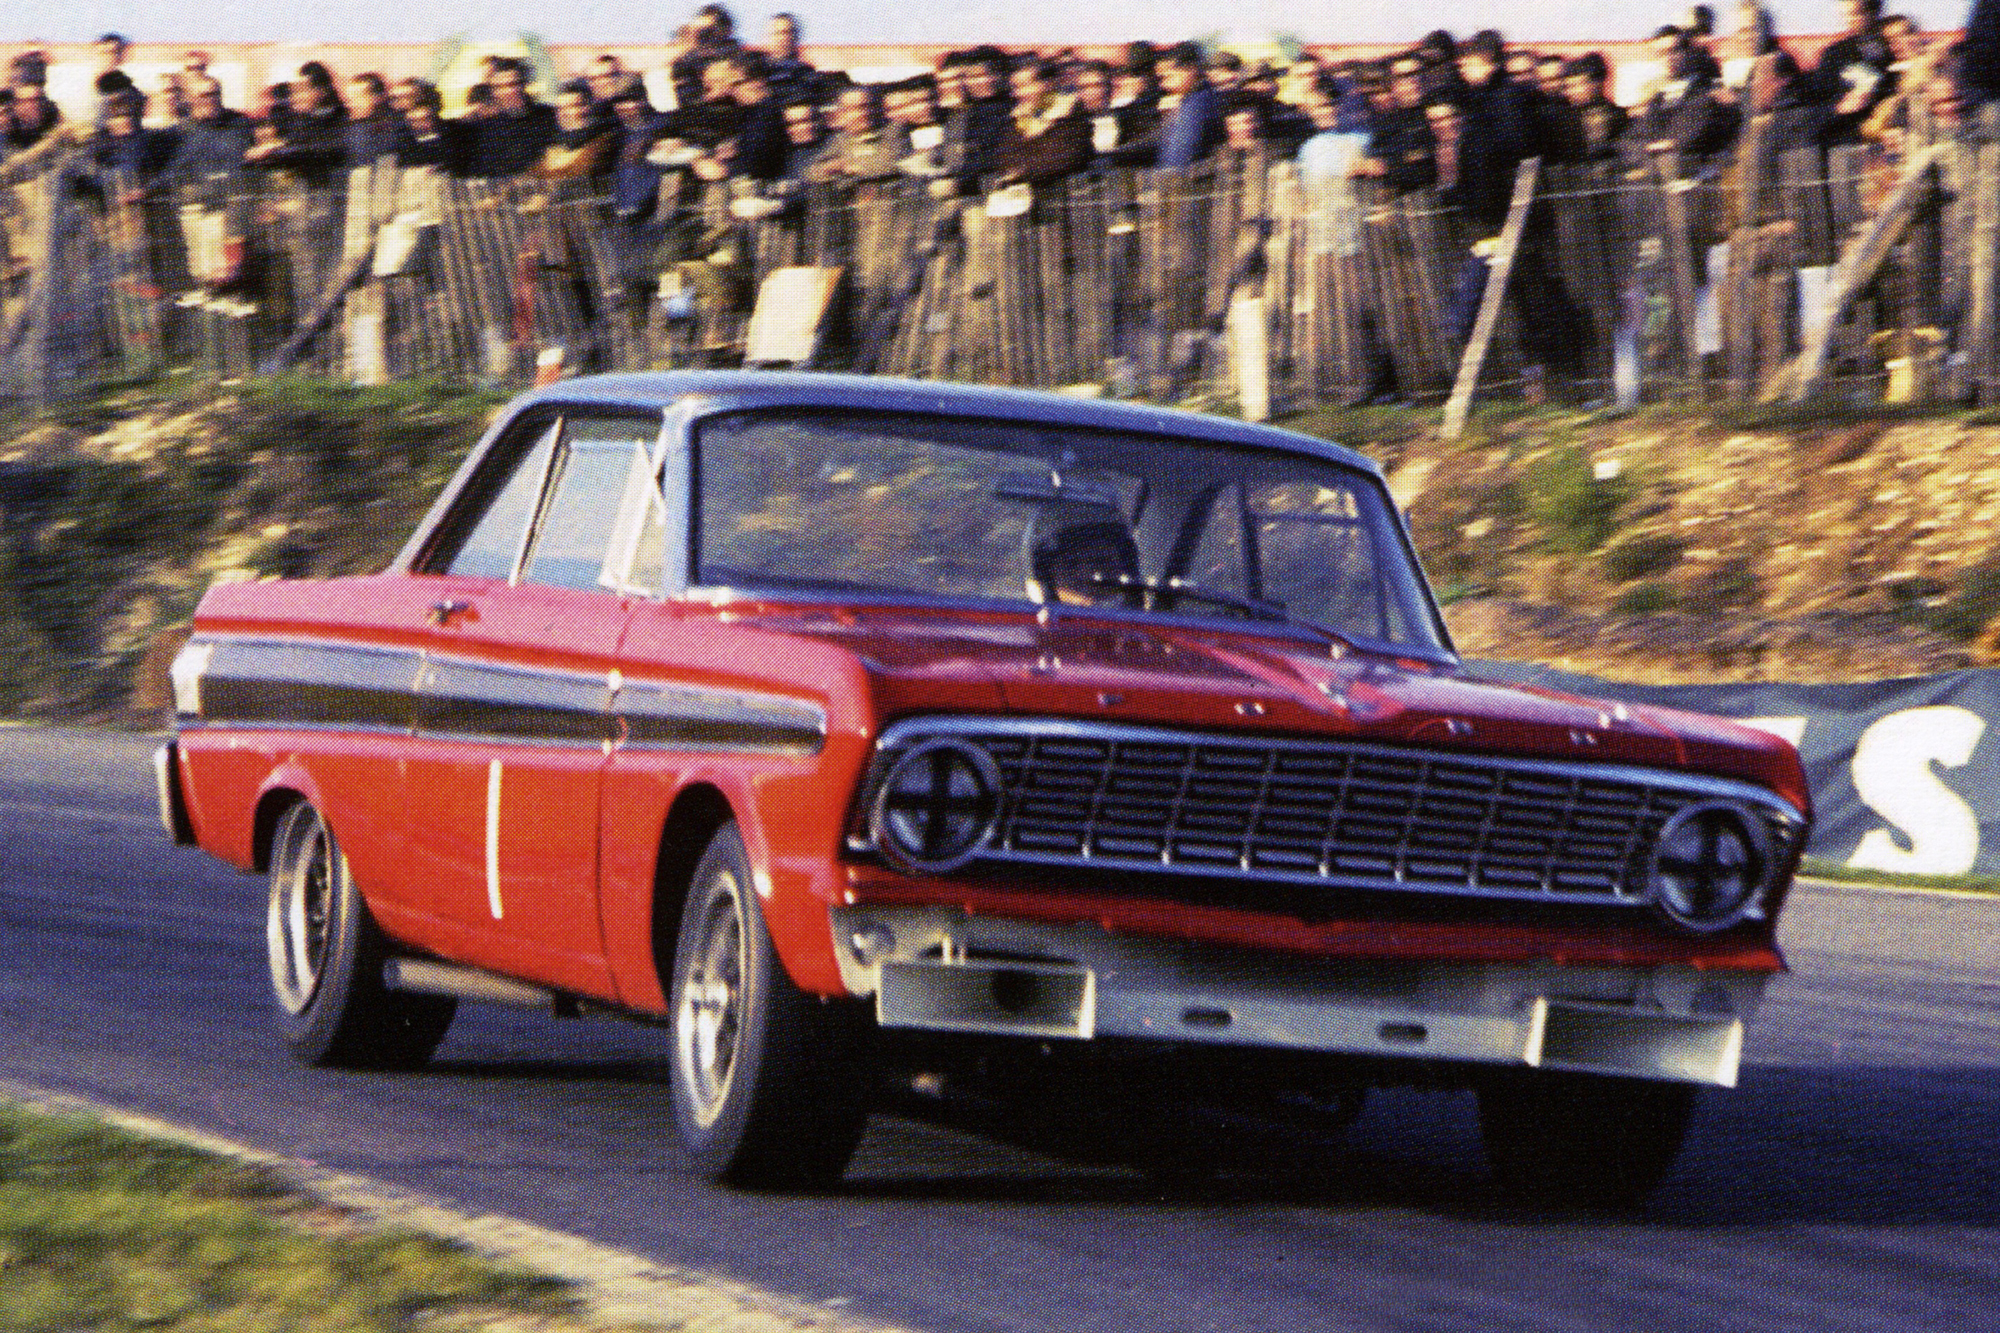 Frank Gardner drove a Group 5 Ford Falcon to victory in the British Saloon Car Championship.